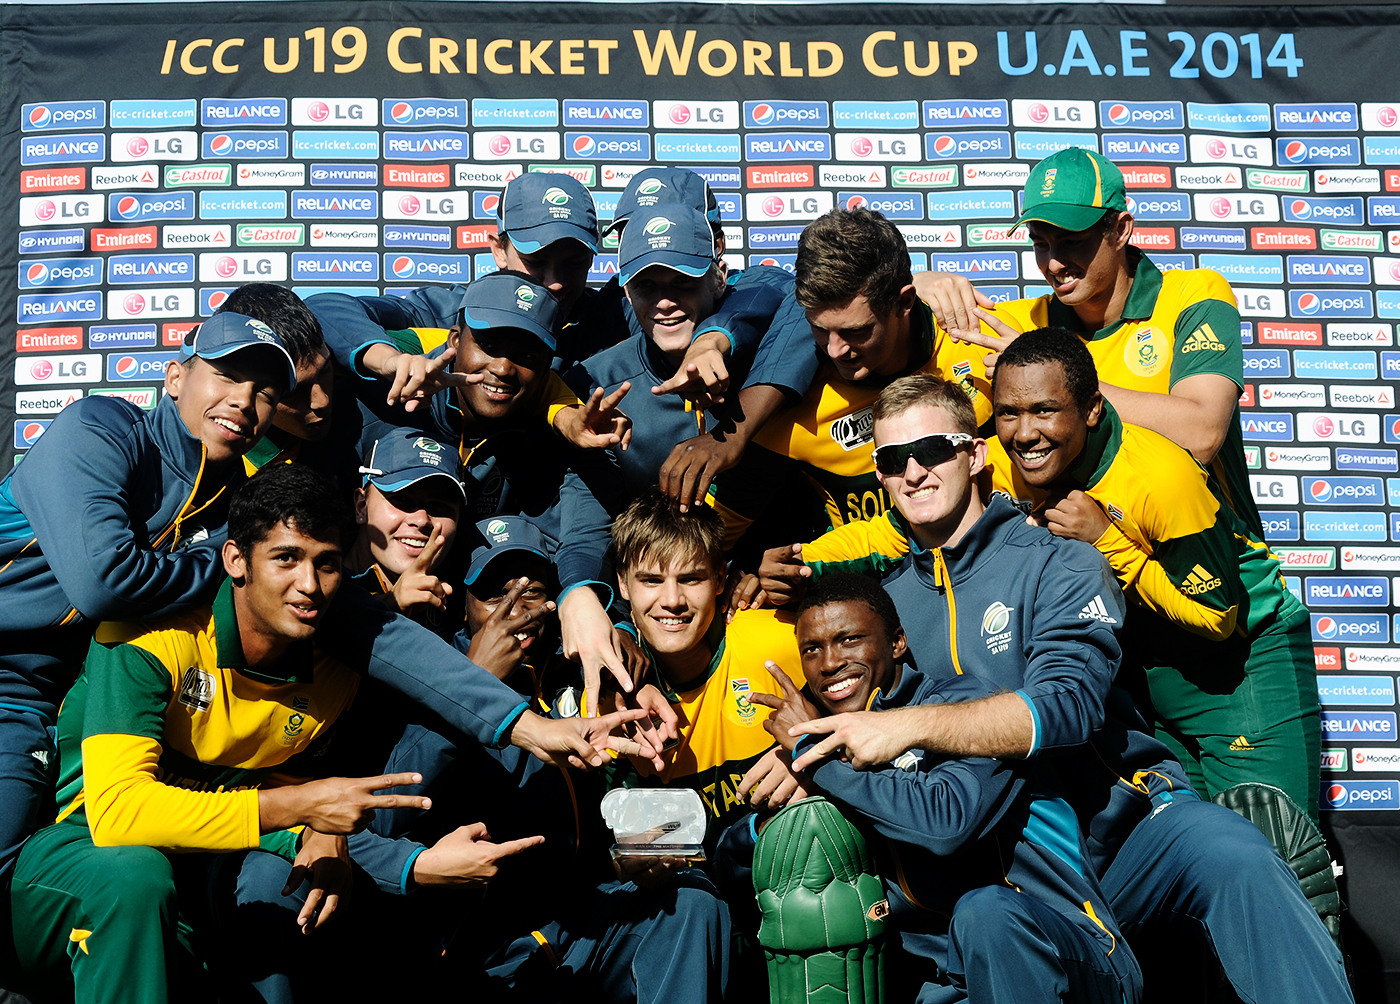 The World Cup winner: Markram's leadership skills were identified at the Under-19 level and he is seen as a future South African captain,  but his first taste of leading the senior side was bitter